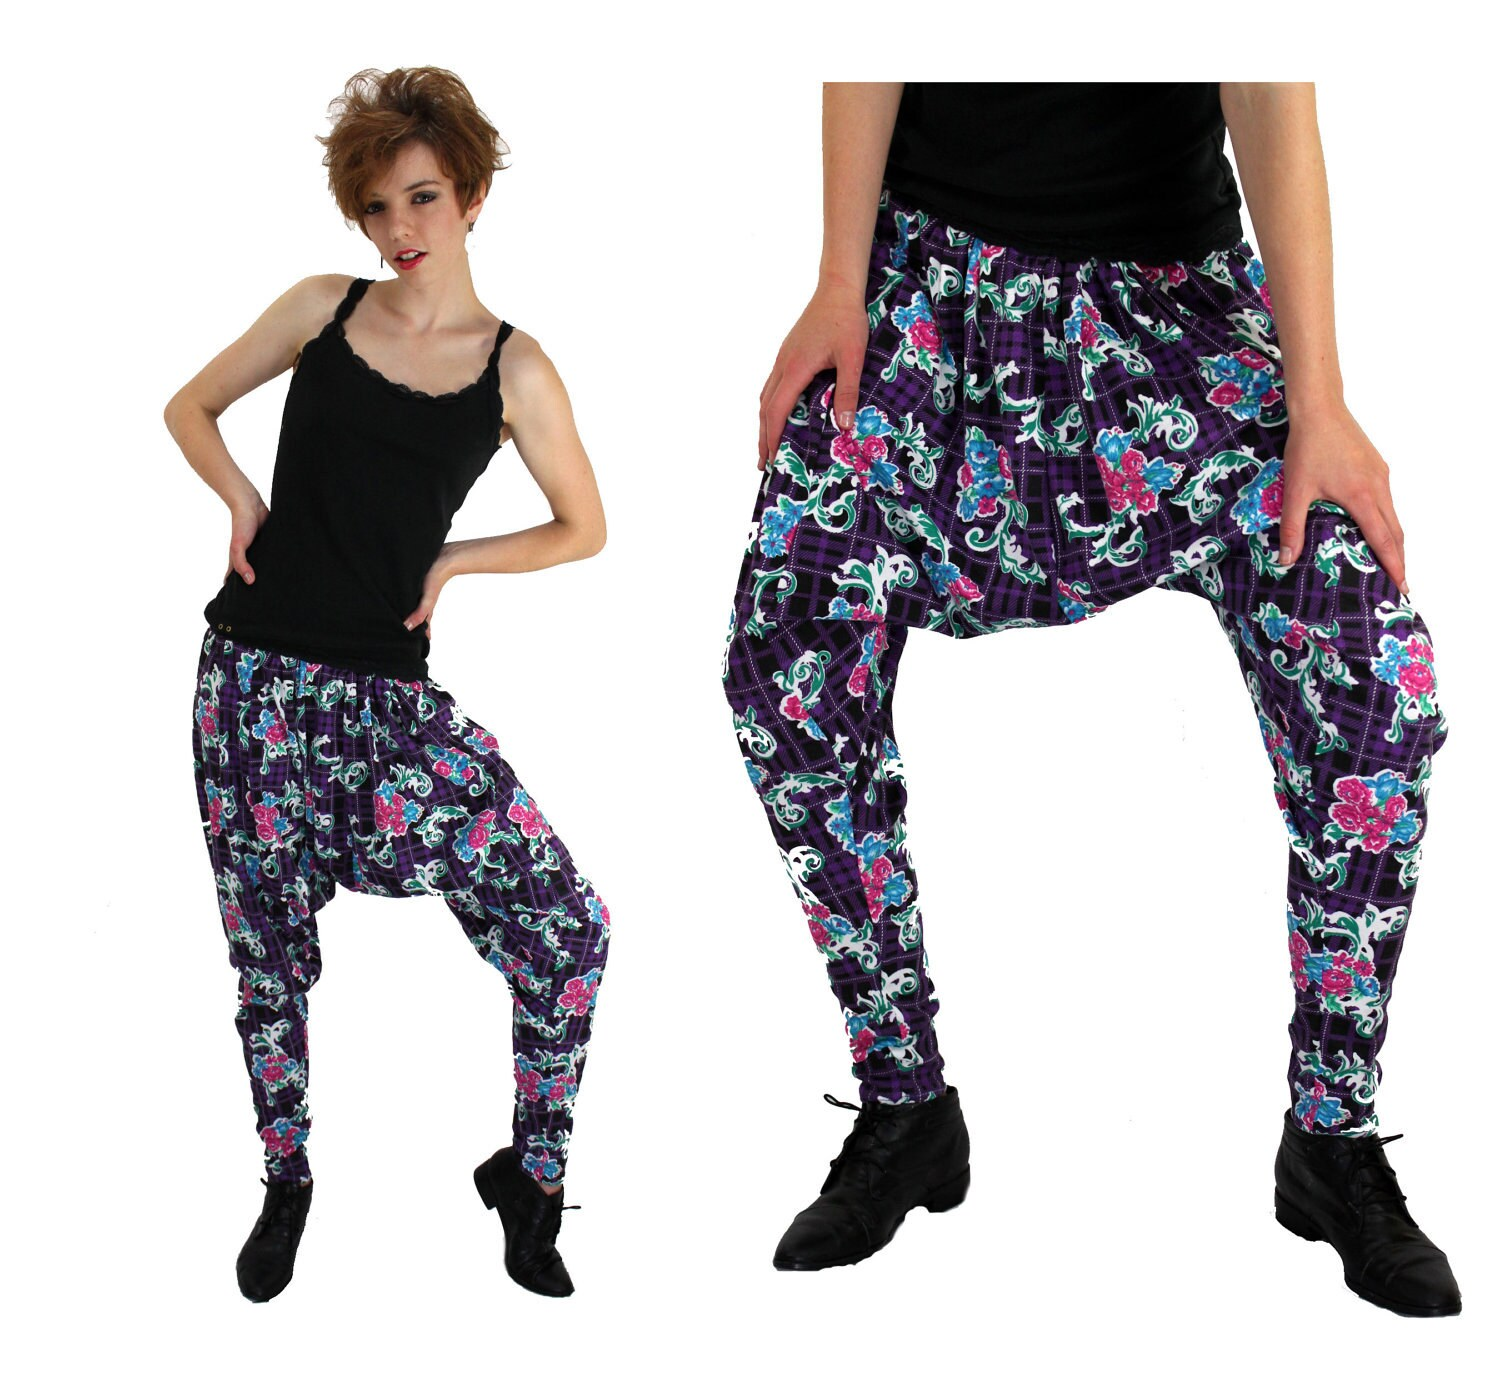 You searched for: girls hammer pants! Etsy is the home to thousands of handmade, vintage, and one-of-a-kind products and gifts related to your search. No matter what you're looking for or where you are in the world, our global marketplace of sellers can help you .